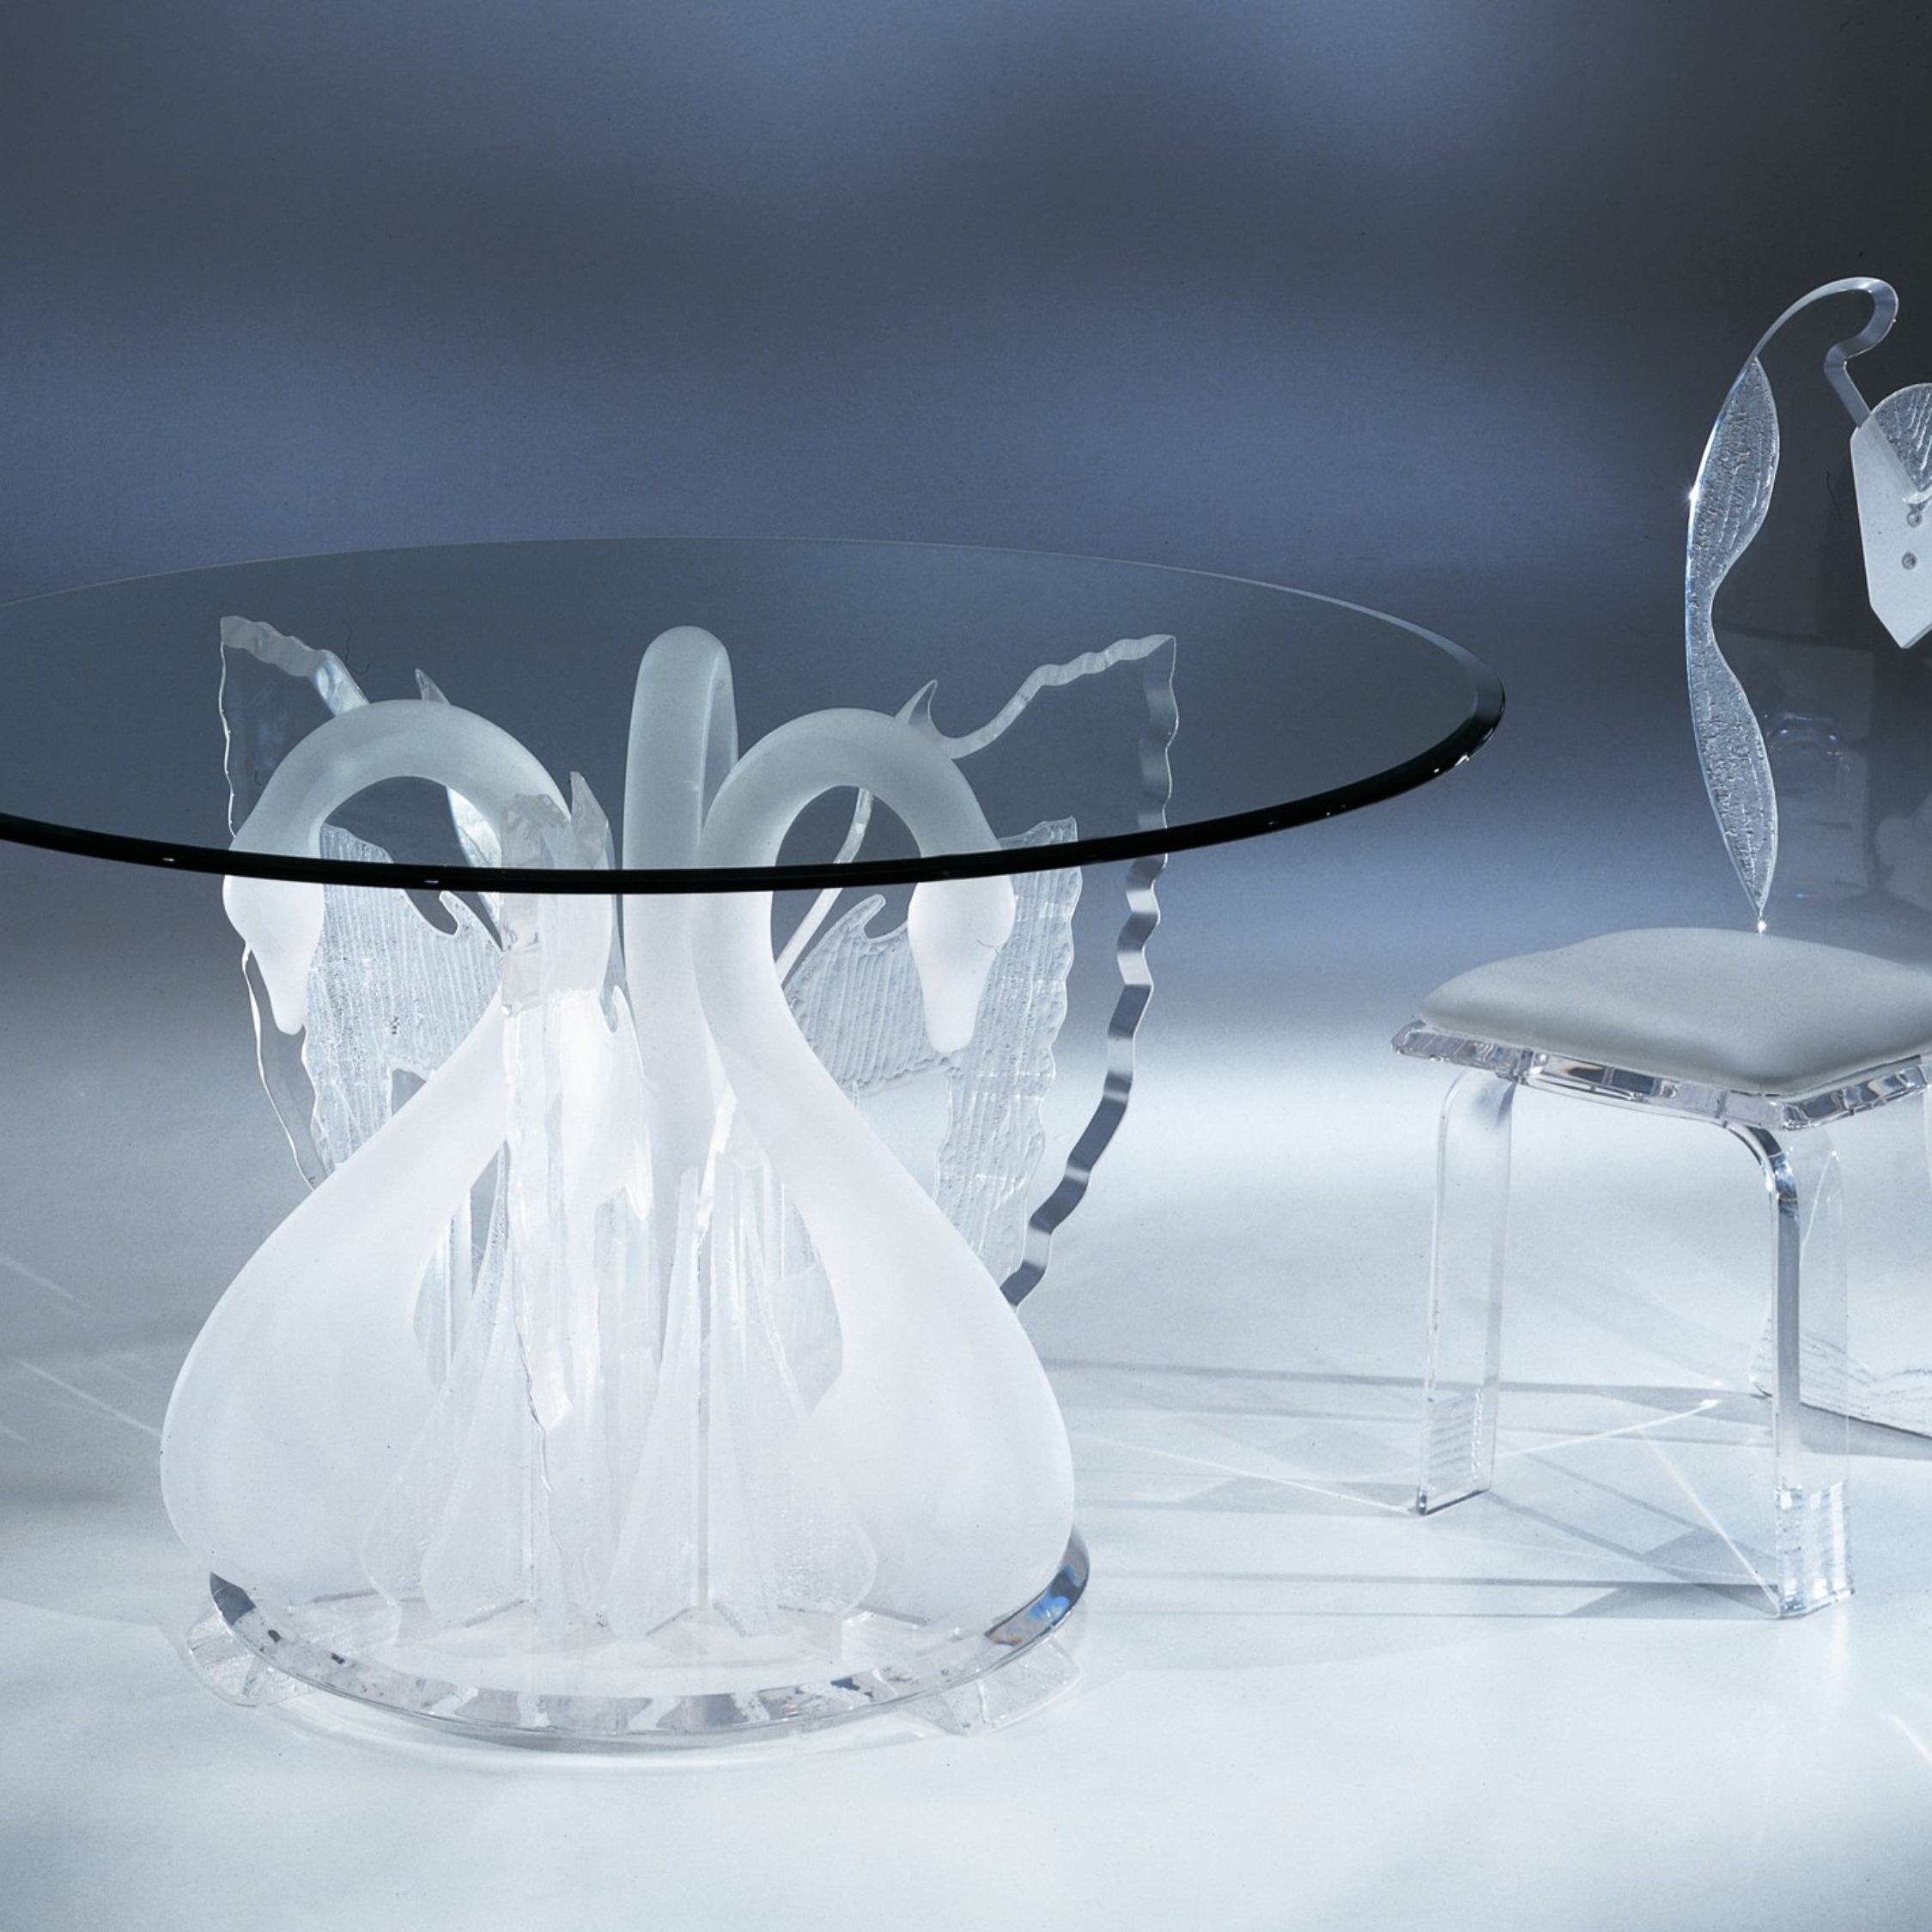 Legend Swan Dinette, Acrylic Wall Art, Acrylic Furniture In Well Liked Round Acrylic Dining Tables (View 7 of 25)